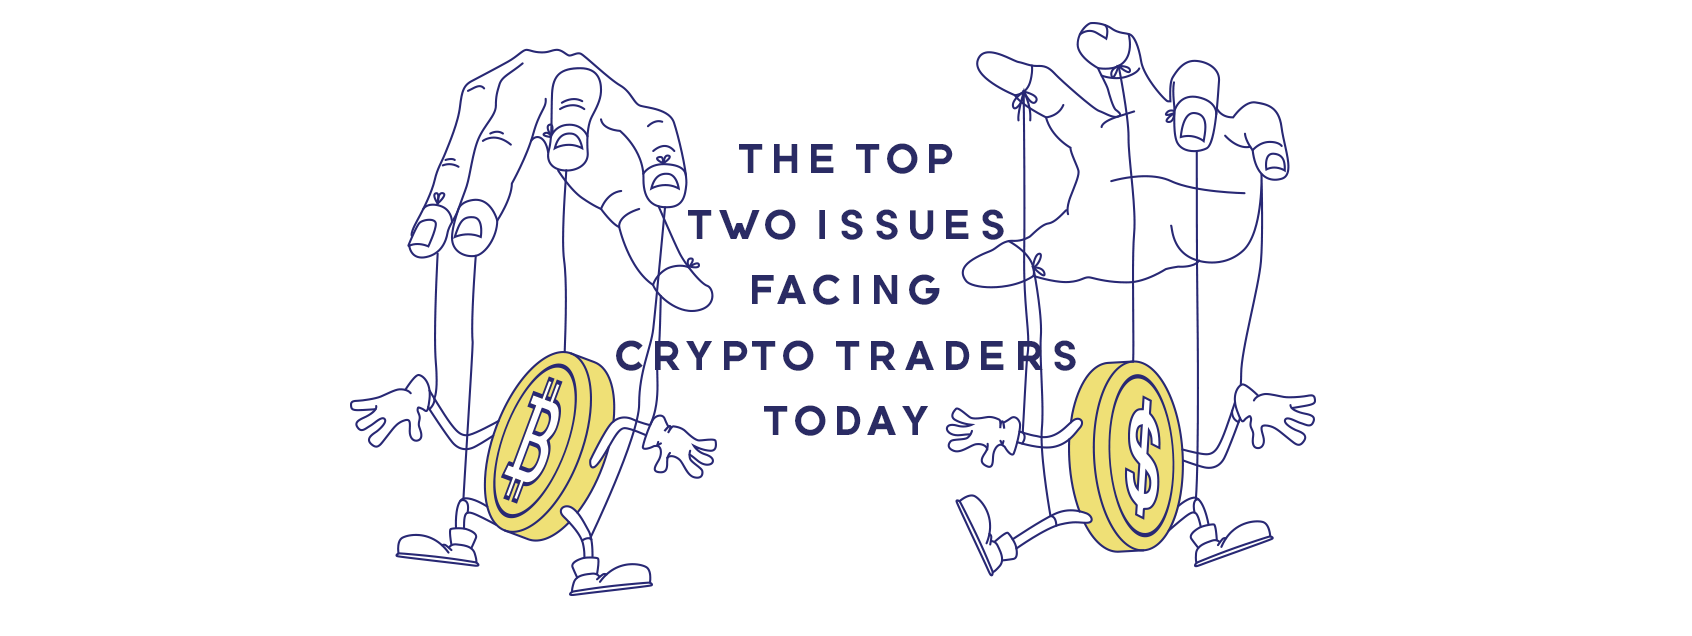 The Top Two Issues Facing Cryptocurrency Traders Today